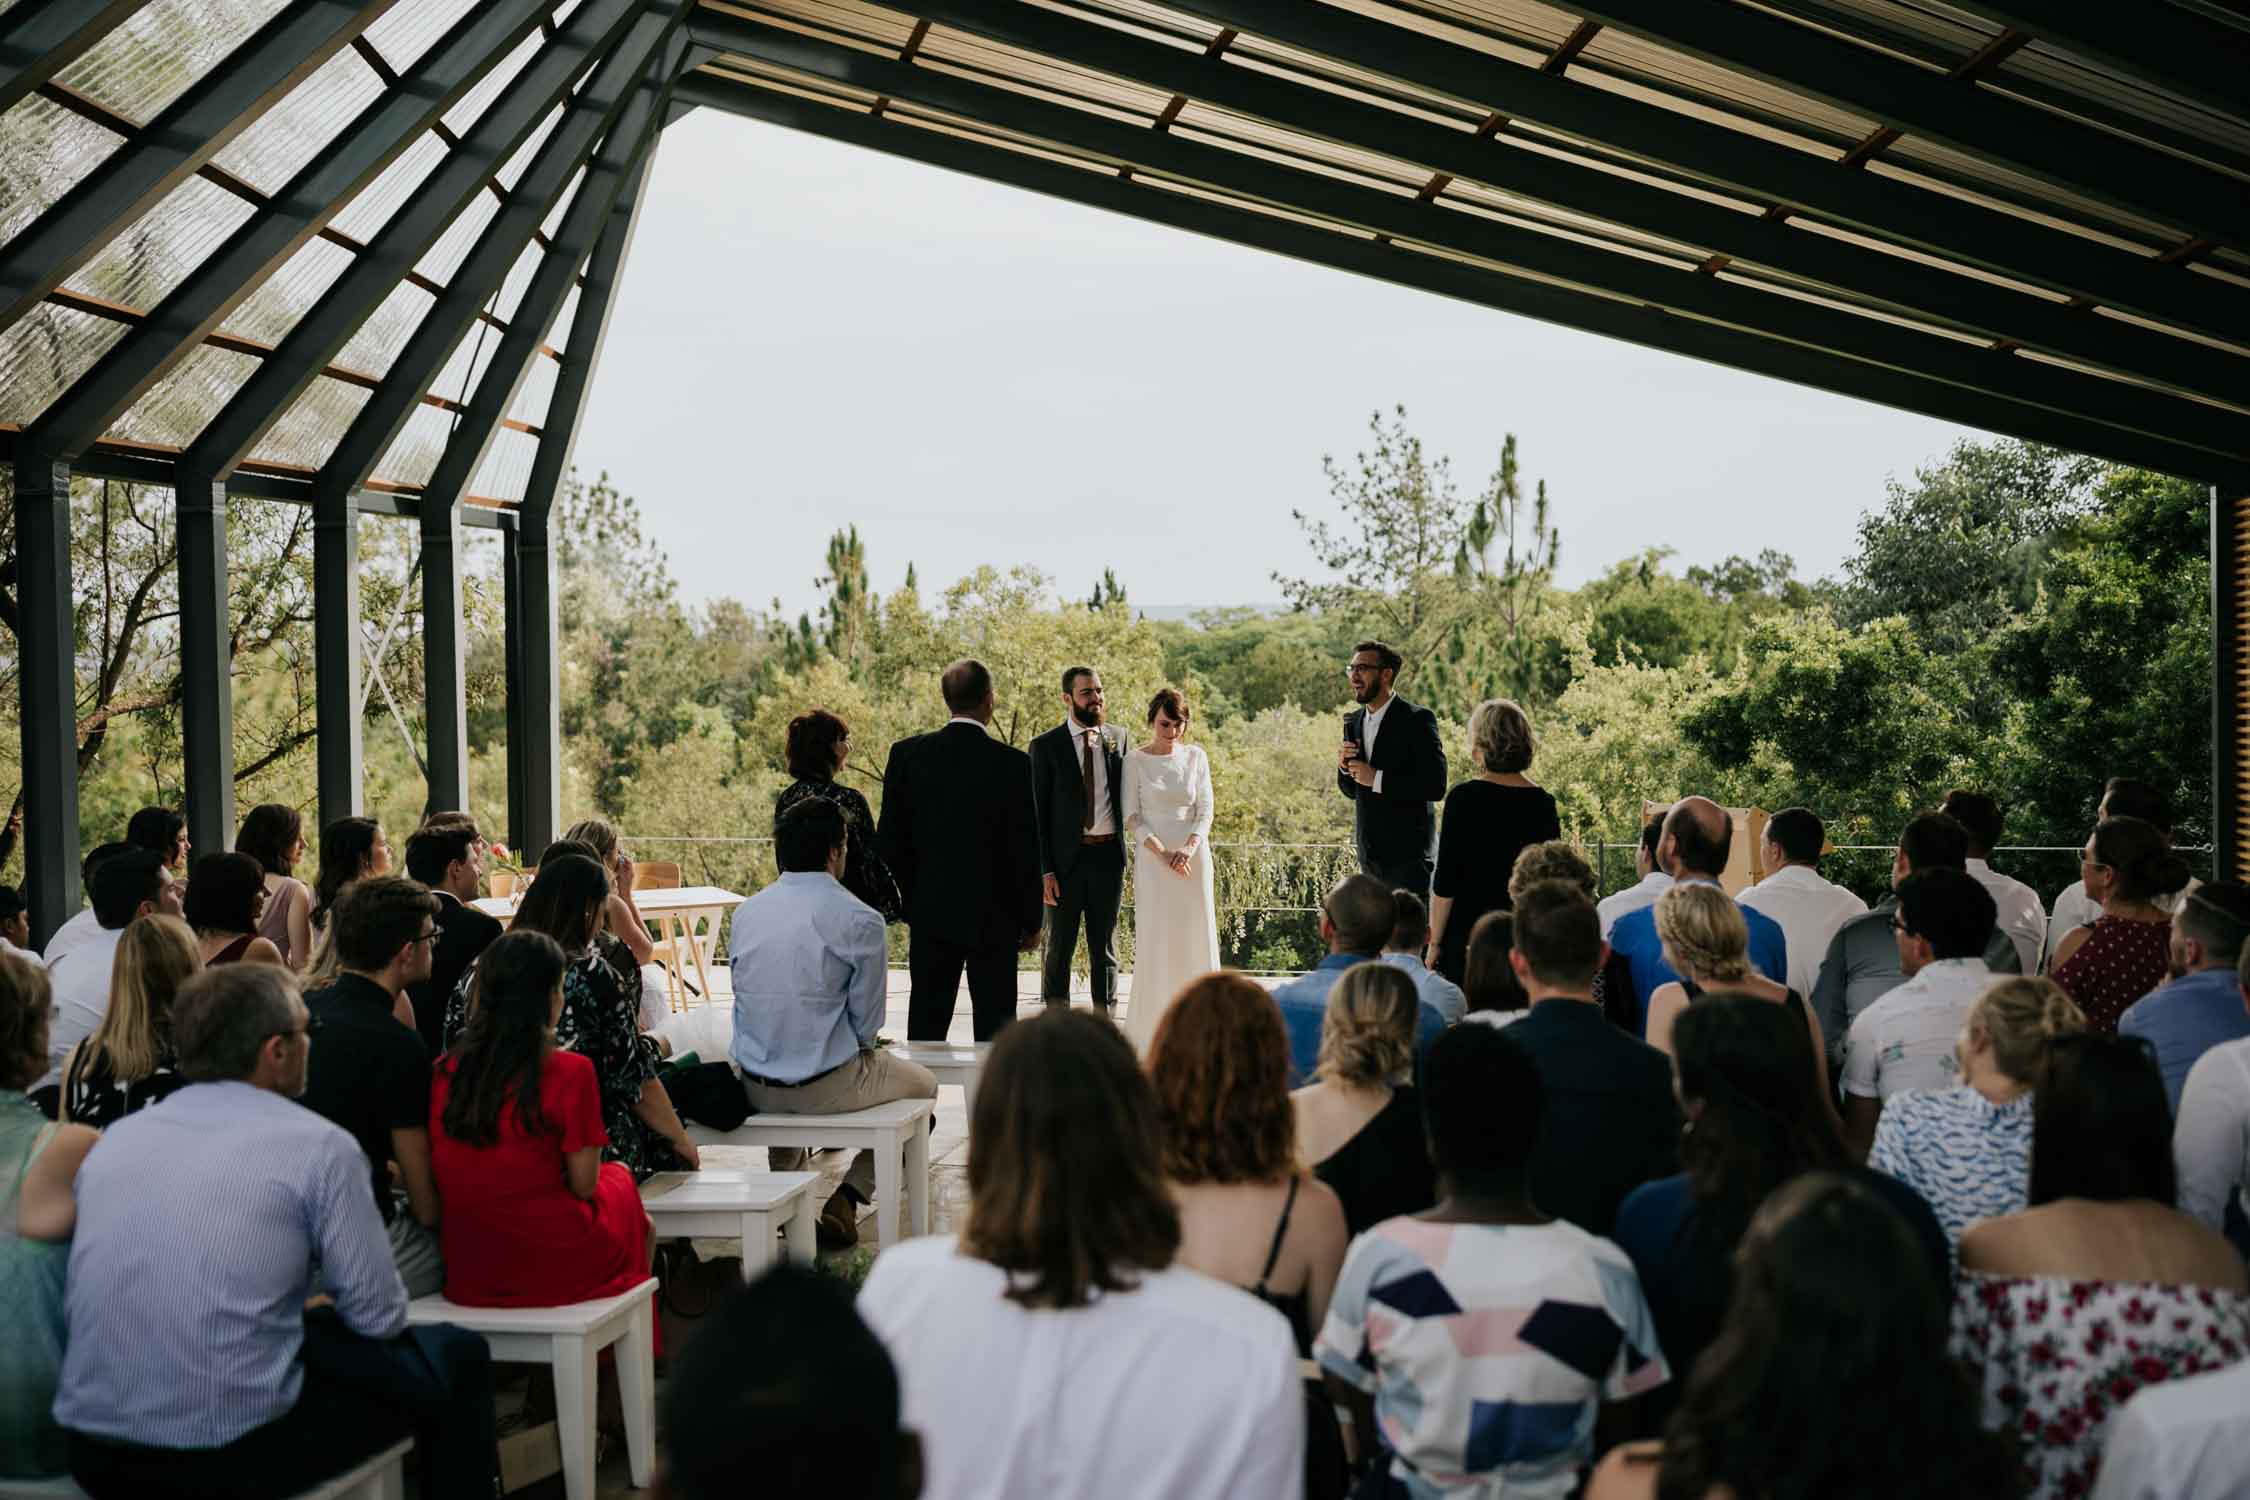 Parents of bride and groom stand to give them away during wedding ceremony in industrial modern geometric wedding venue